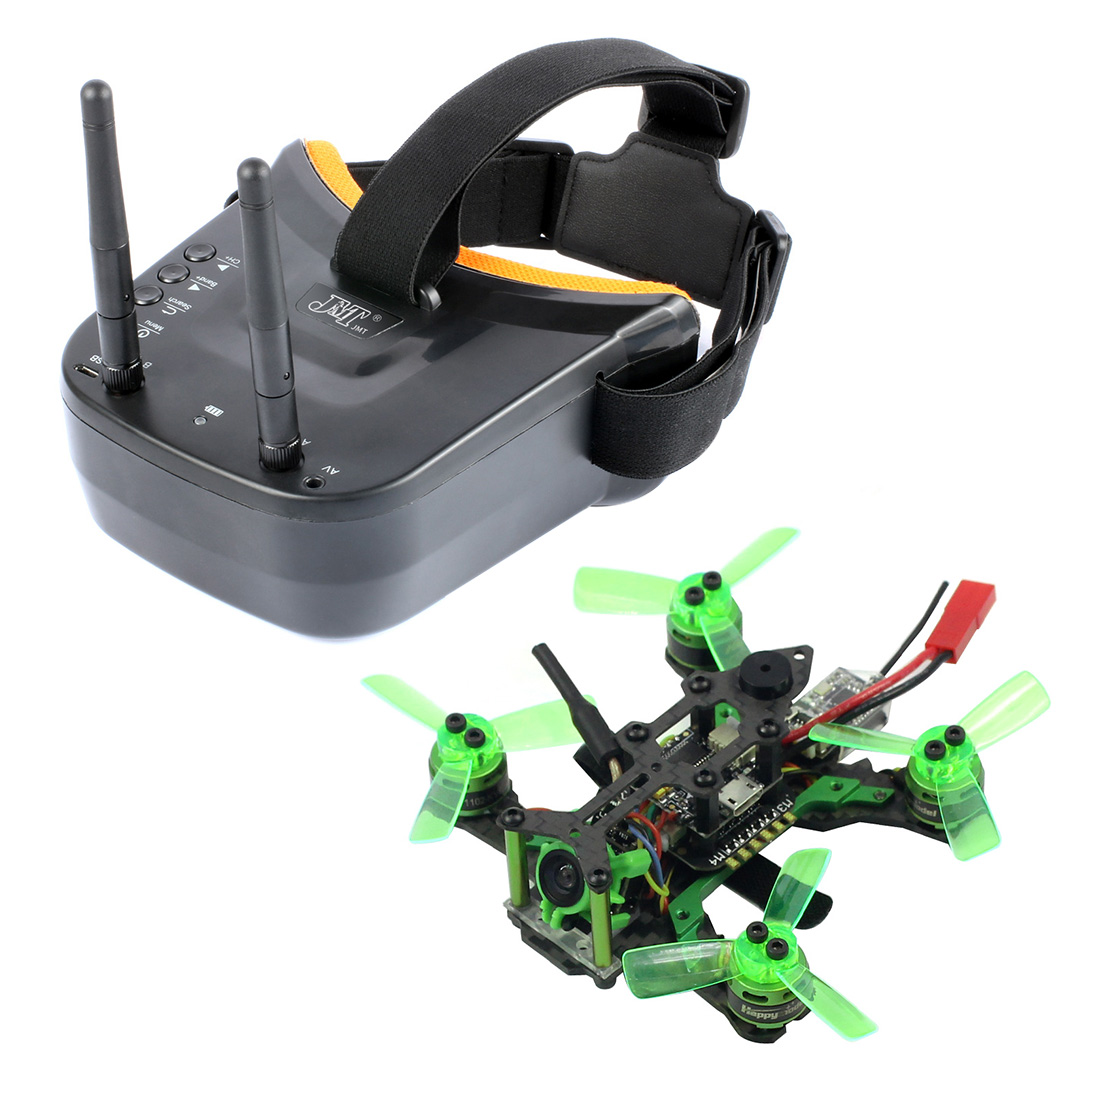 Mantis85 85mm 5.8G FPV Micro Racing Drone Quadcopter BNF 600TVL Camera VTX & Double Antenna 3 Inch Mini Video Goggles for FLysky image